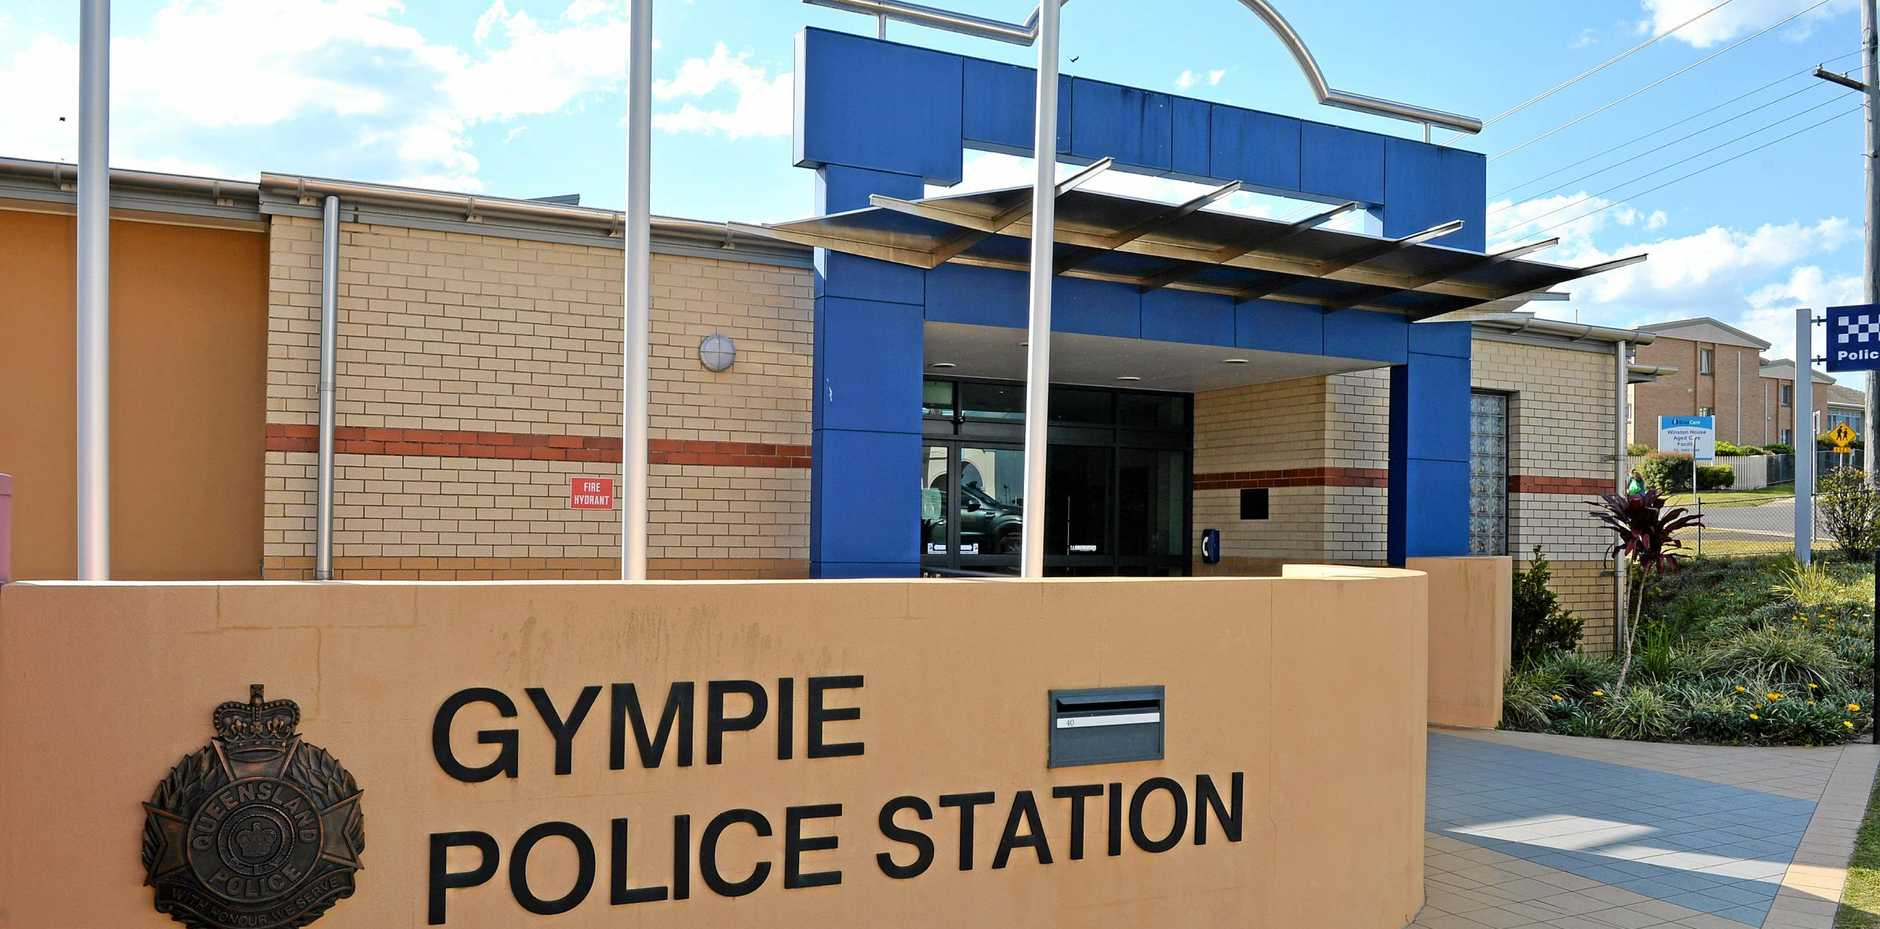 A GYMPIE man who spent nine days behind bars until his release yesterday drew a swastika on the front desk of the Gympie Police Station.